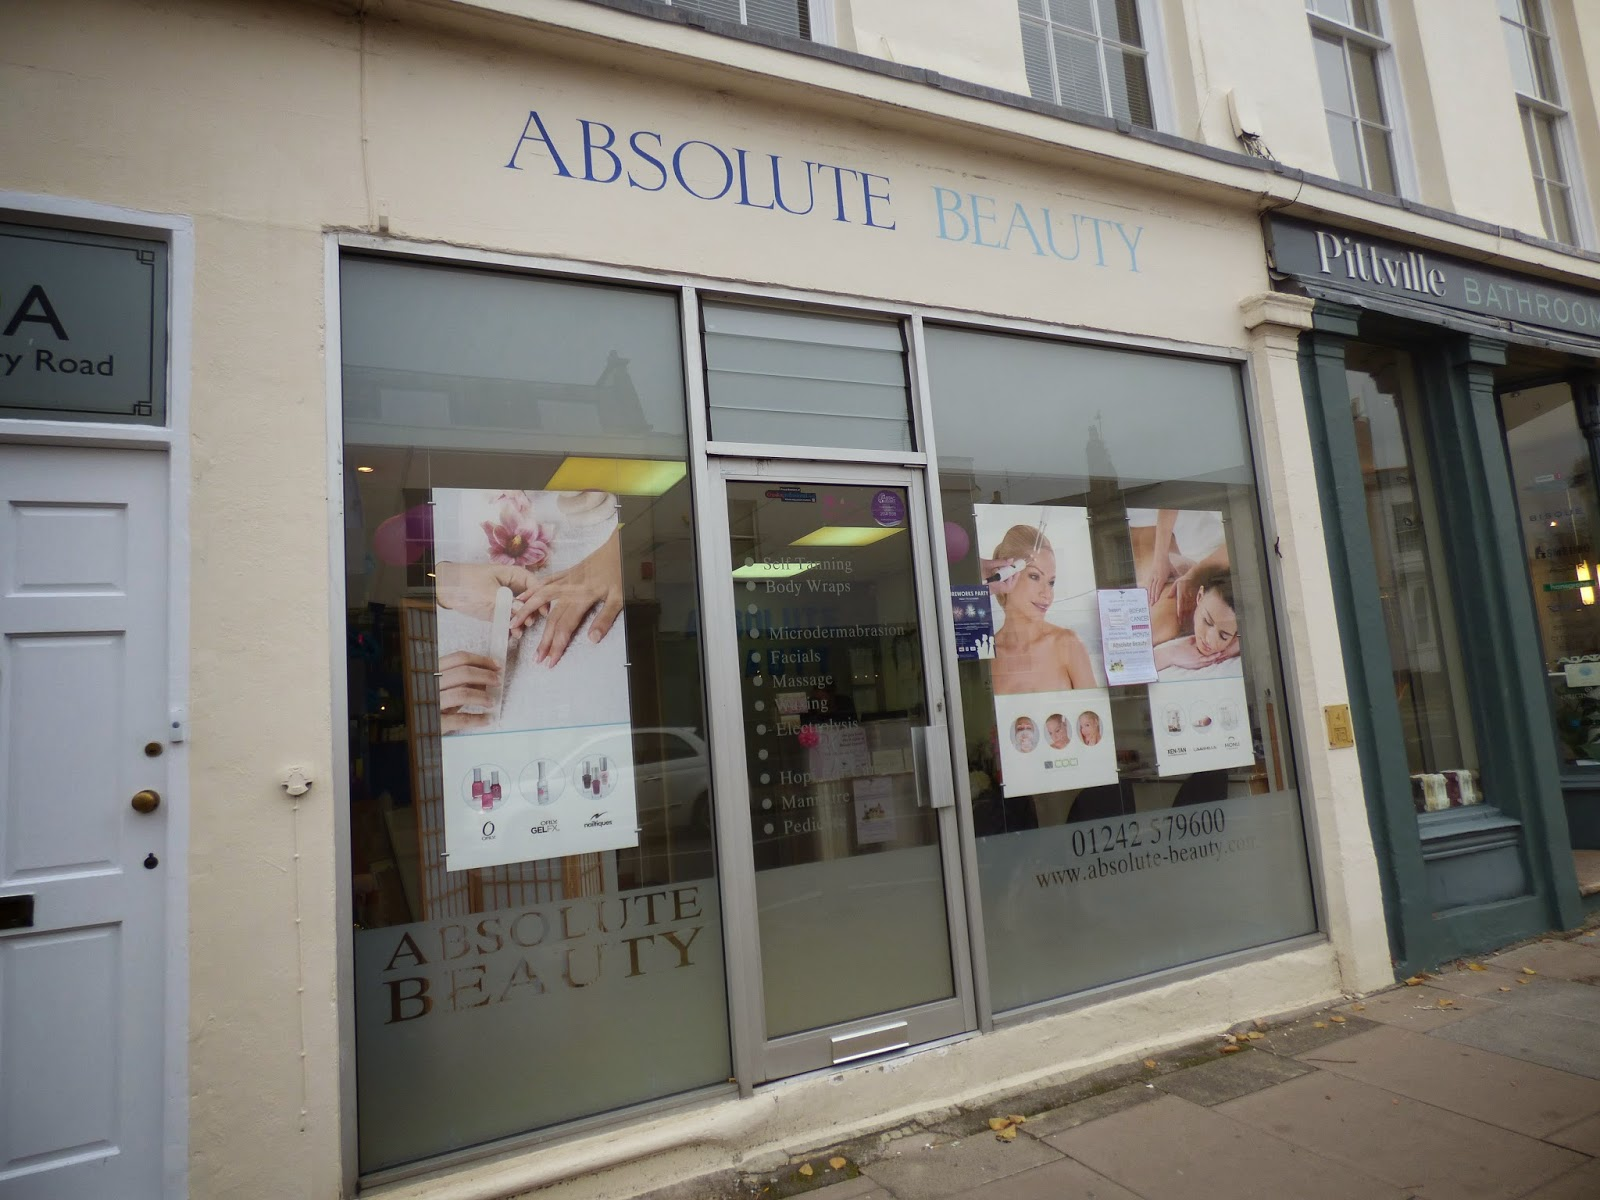 Jelly rose absolute beauty salon in cheltenham review for Absolute beauty salon